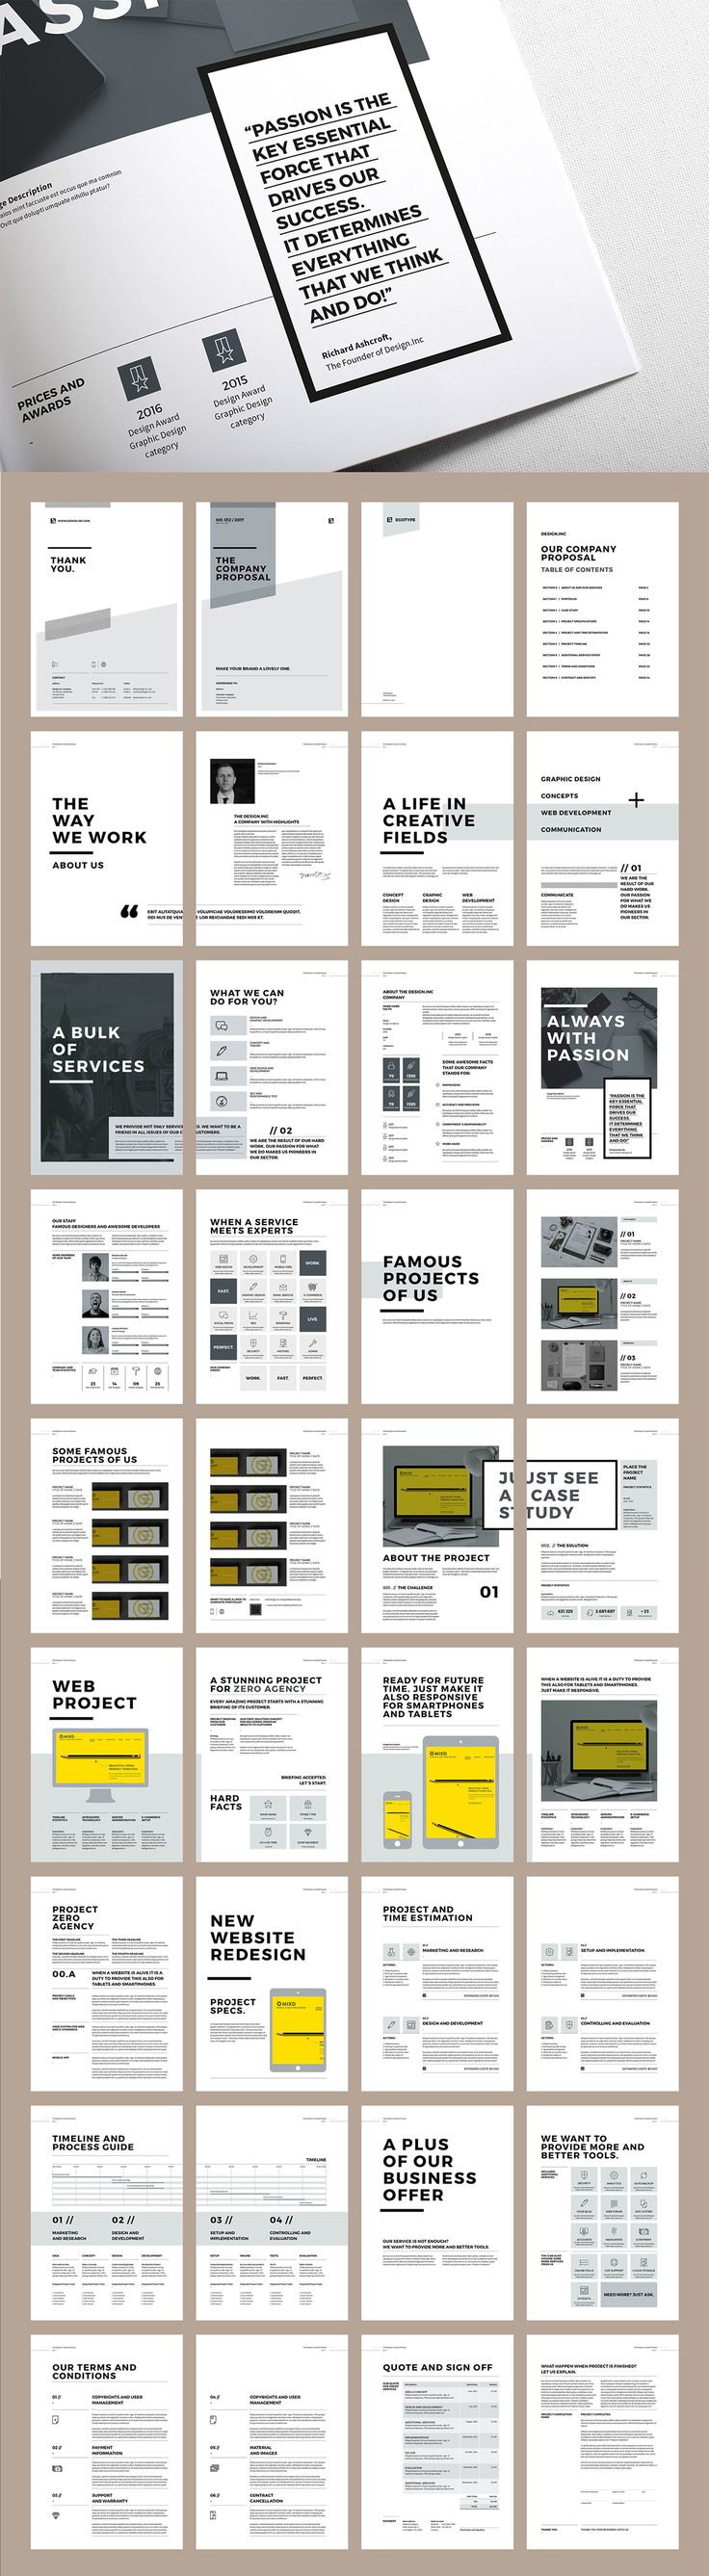 Best 25 microsoft word document ideas on pinterest for Microsoft office portfolio template